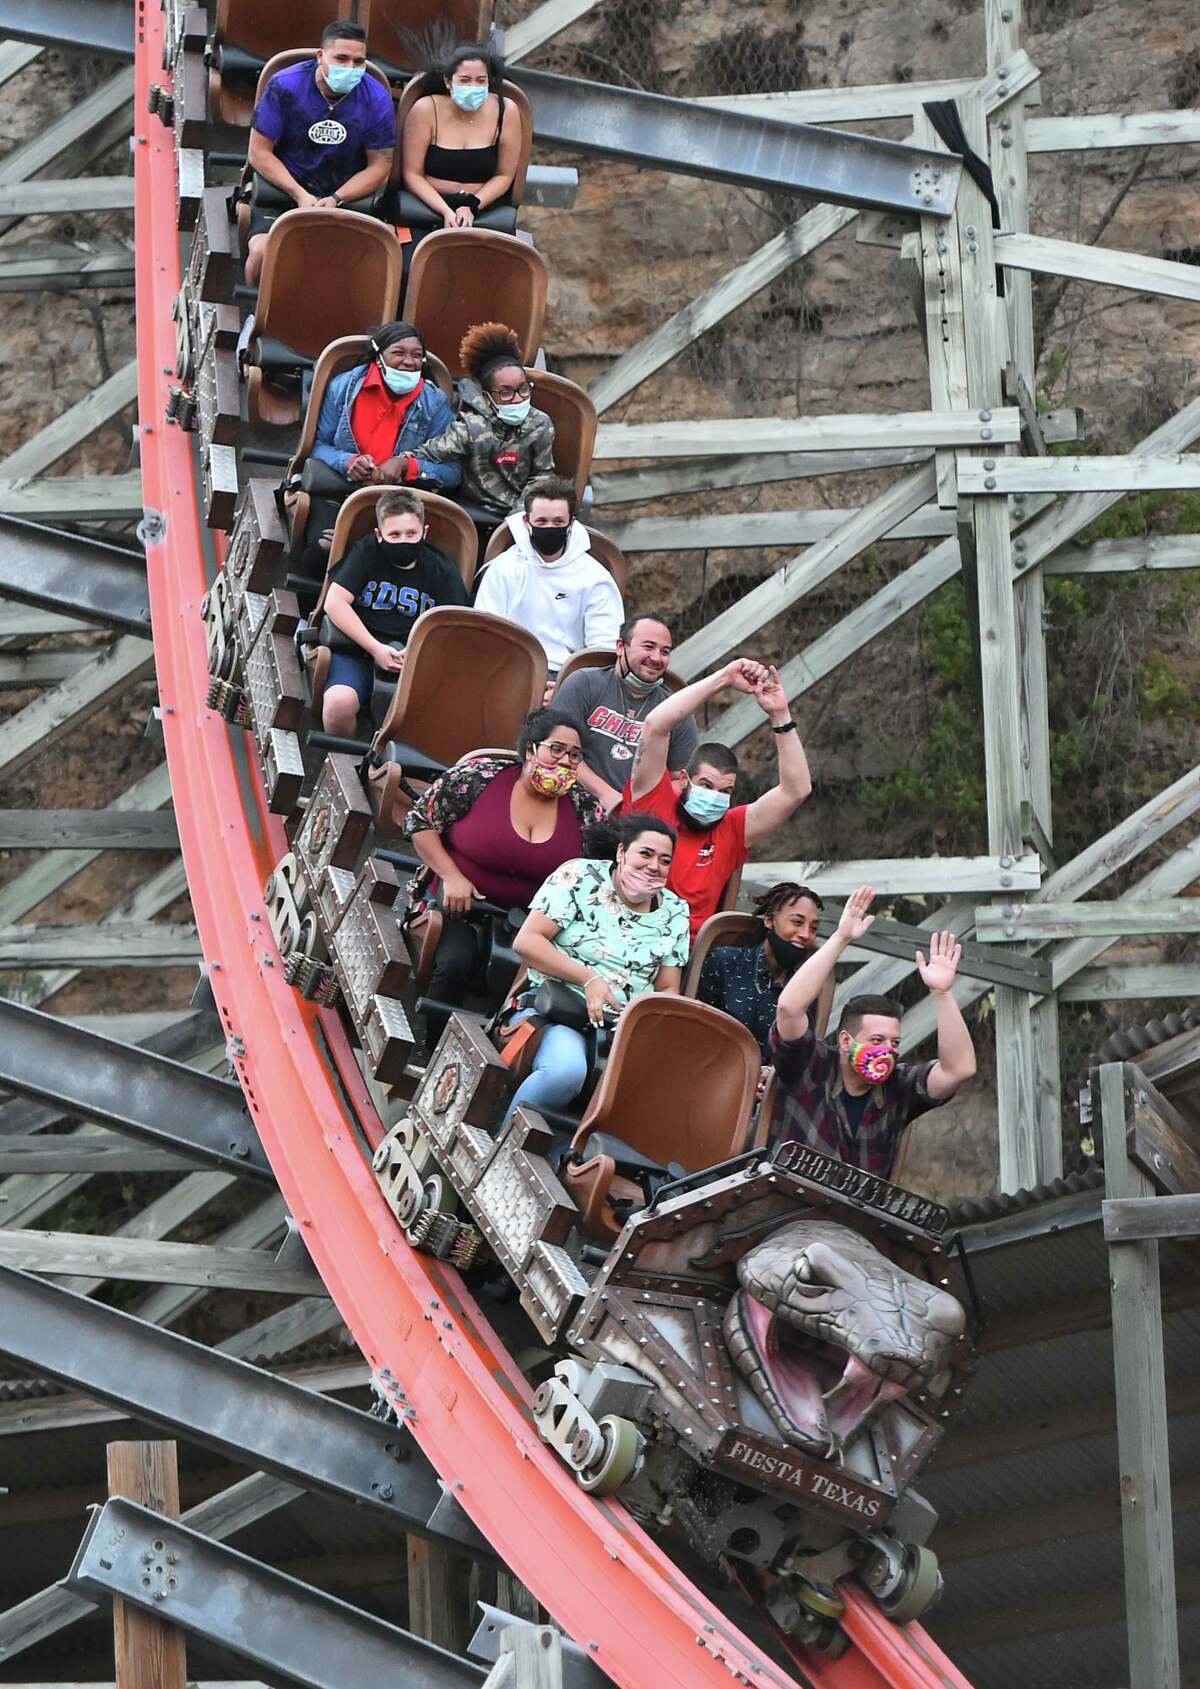 Visitors ride the Iron Rattler during Halloween activities at Six Flags Fiesta Texas. The haunted houses have moved outdoors with social distancing and mask protocals in place.